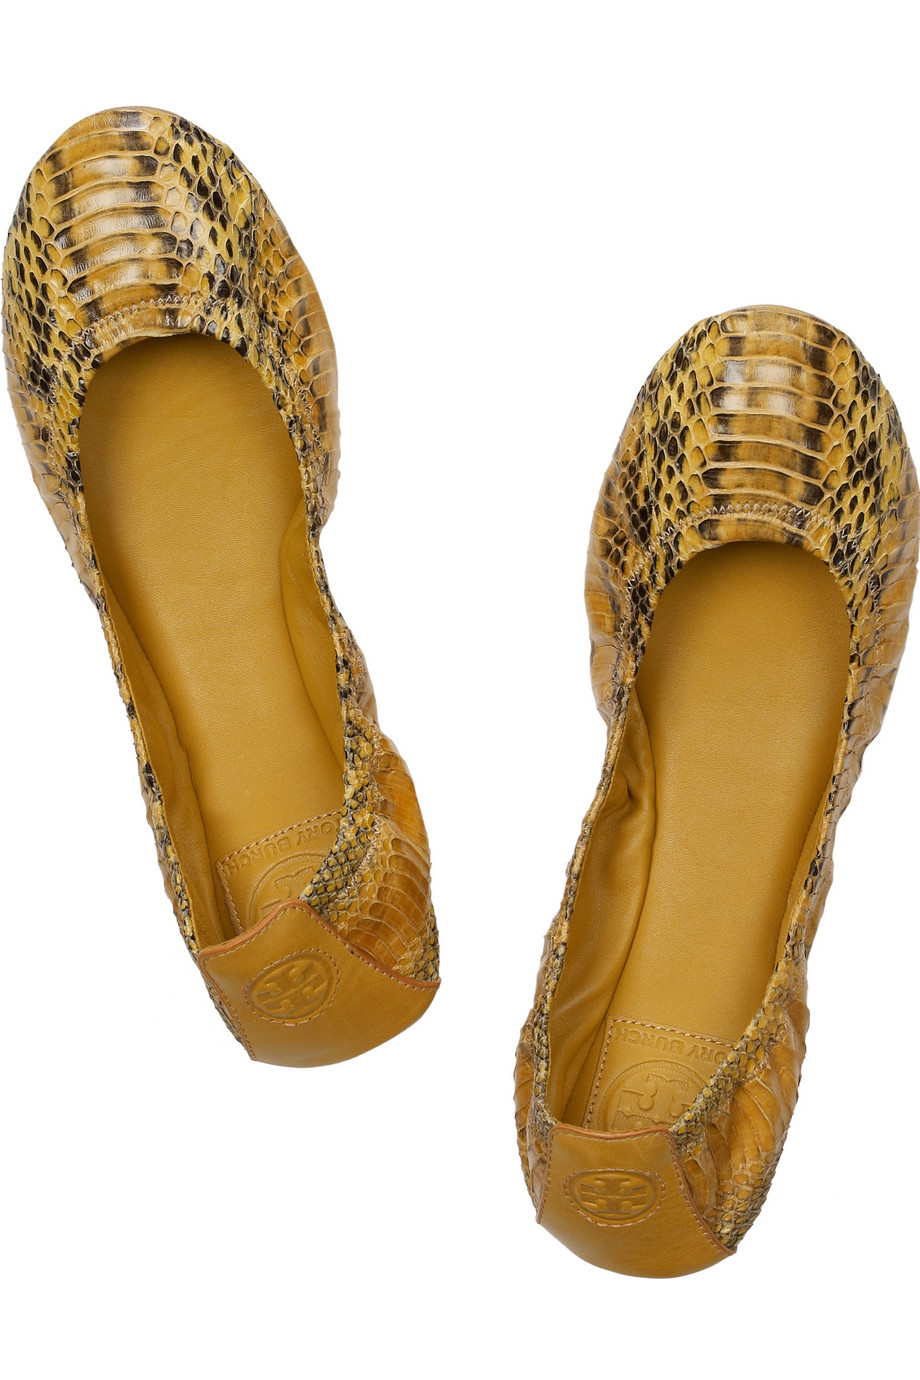 5ce444eb3 Lyst - Tory Burch Eddie Pythoneffect Leather Ballet Flats in Yellow